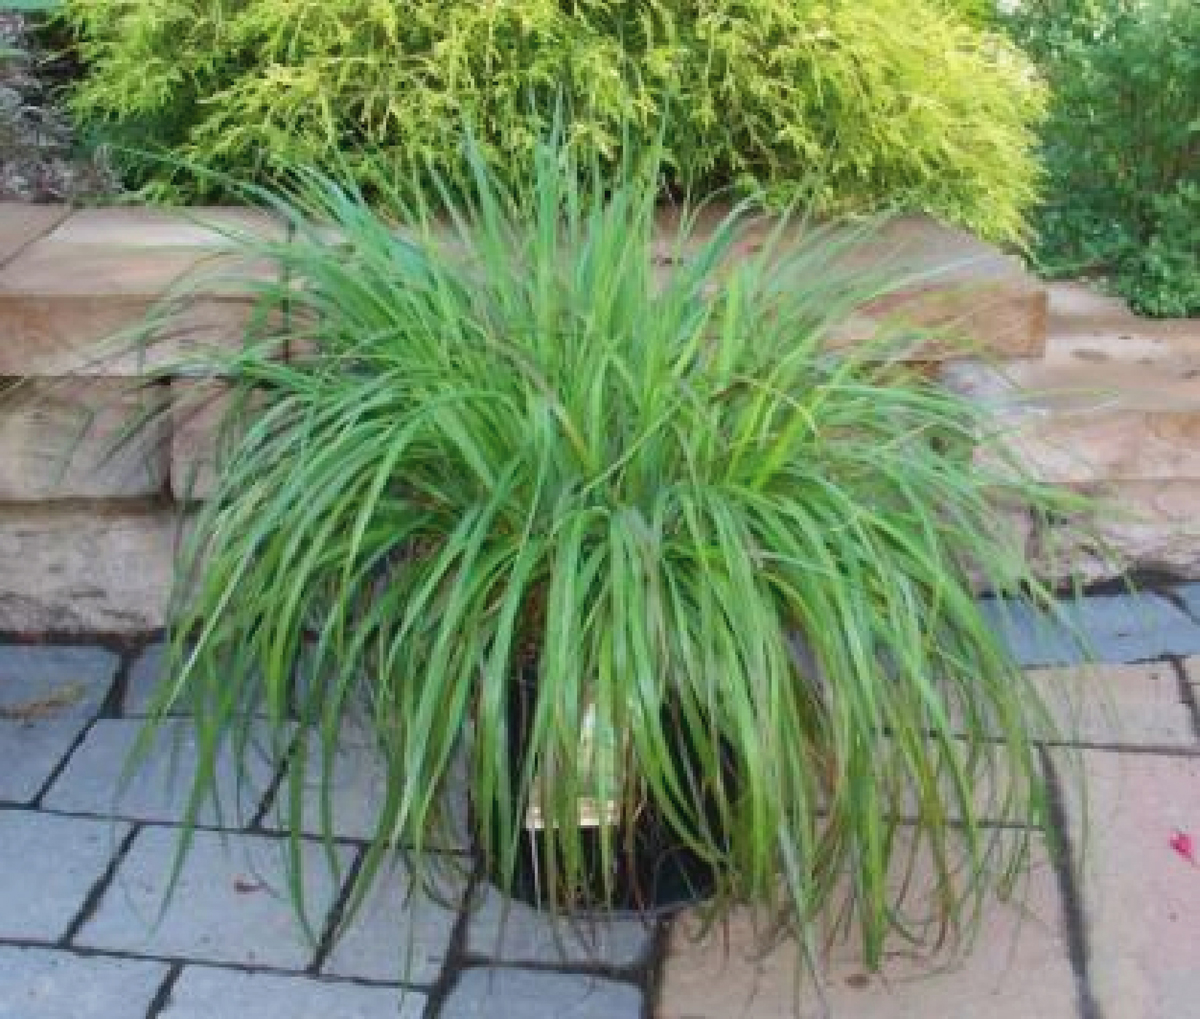 Ornamental grasses zone 5 - Attractive Light Green Grass Blooms Buff Colored Plumes June Sept 4 Zone 5 Size 3 View More Details